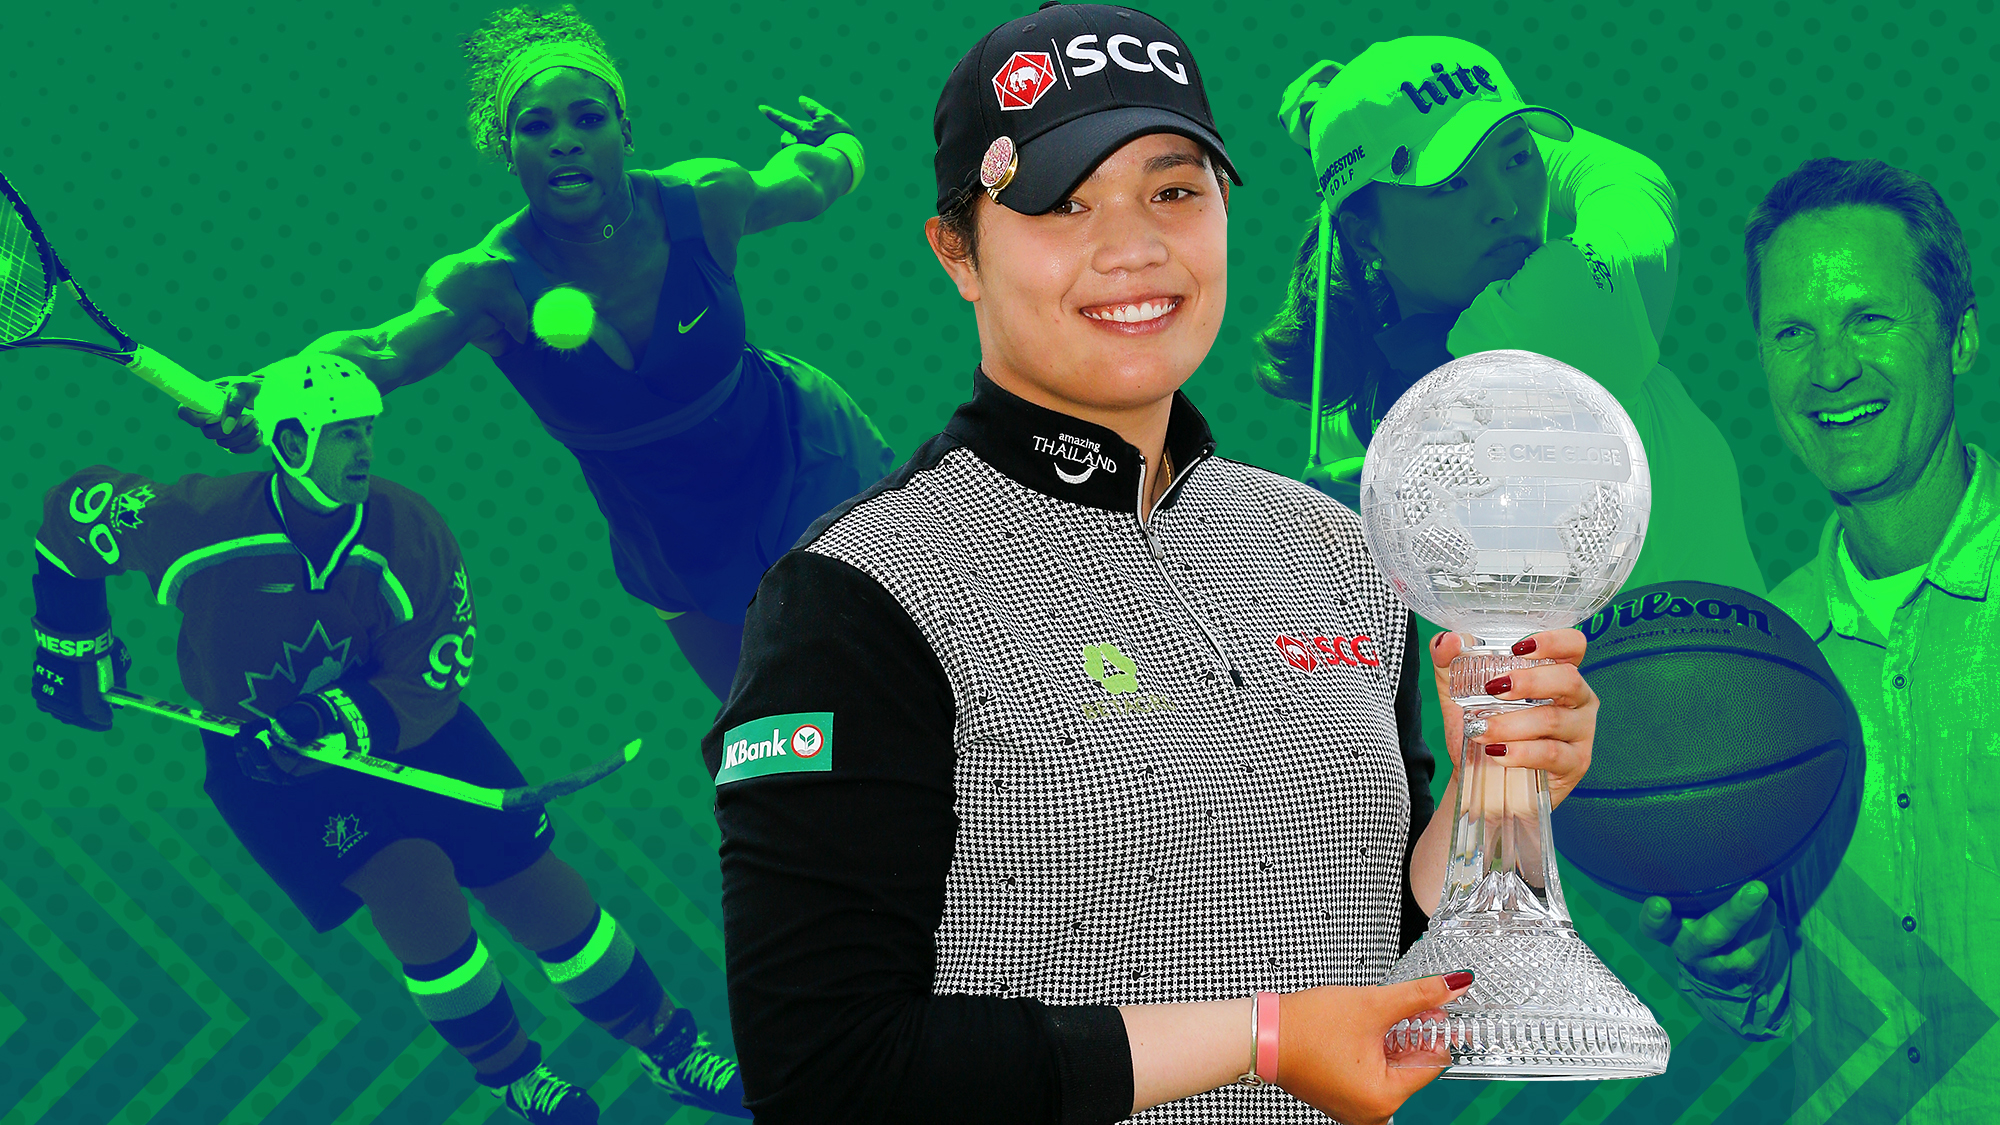 The Mental Approach To Stay at the Top, How Ariya Jutanugarn Focuses on Happiness on the Course | LPGA | Ladies Professional Golf Association